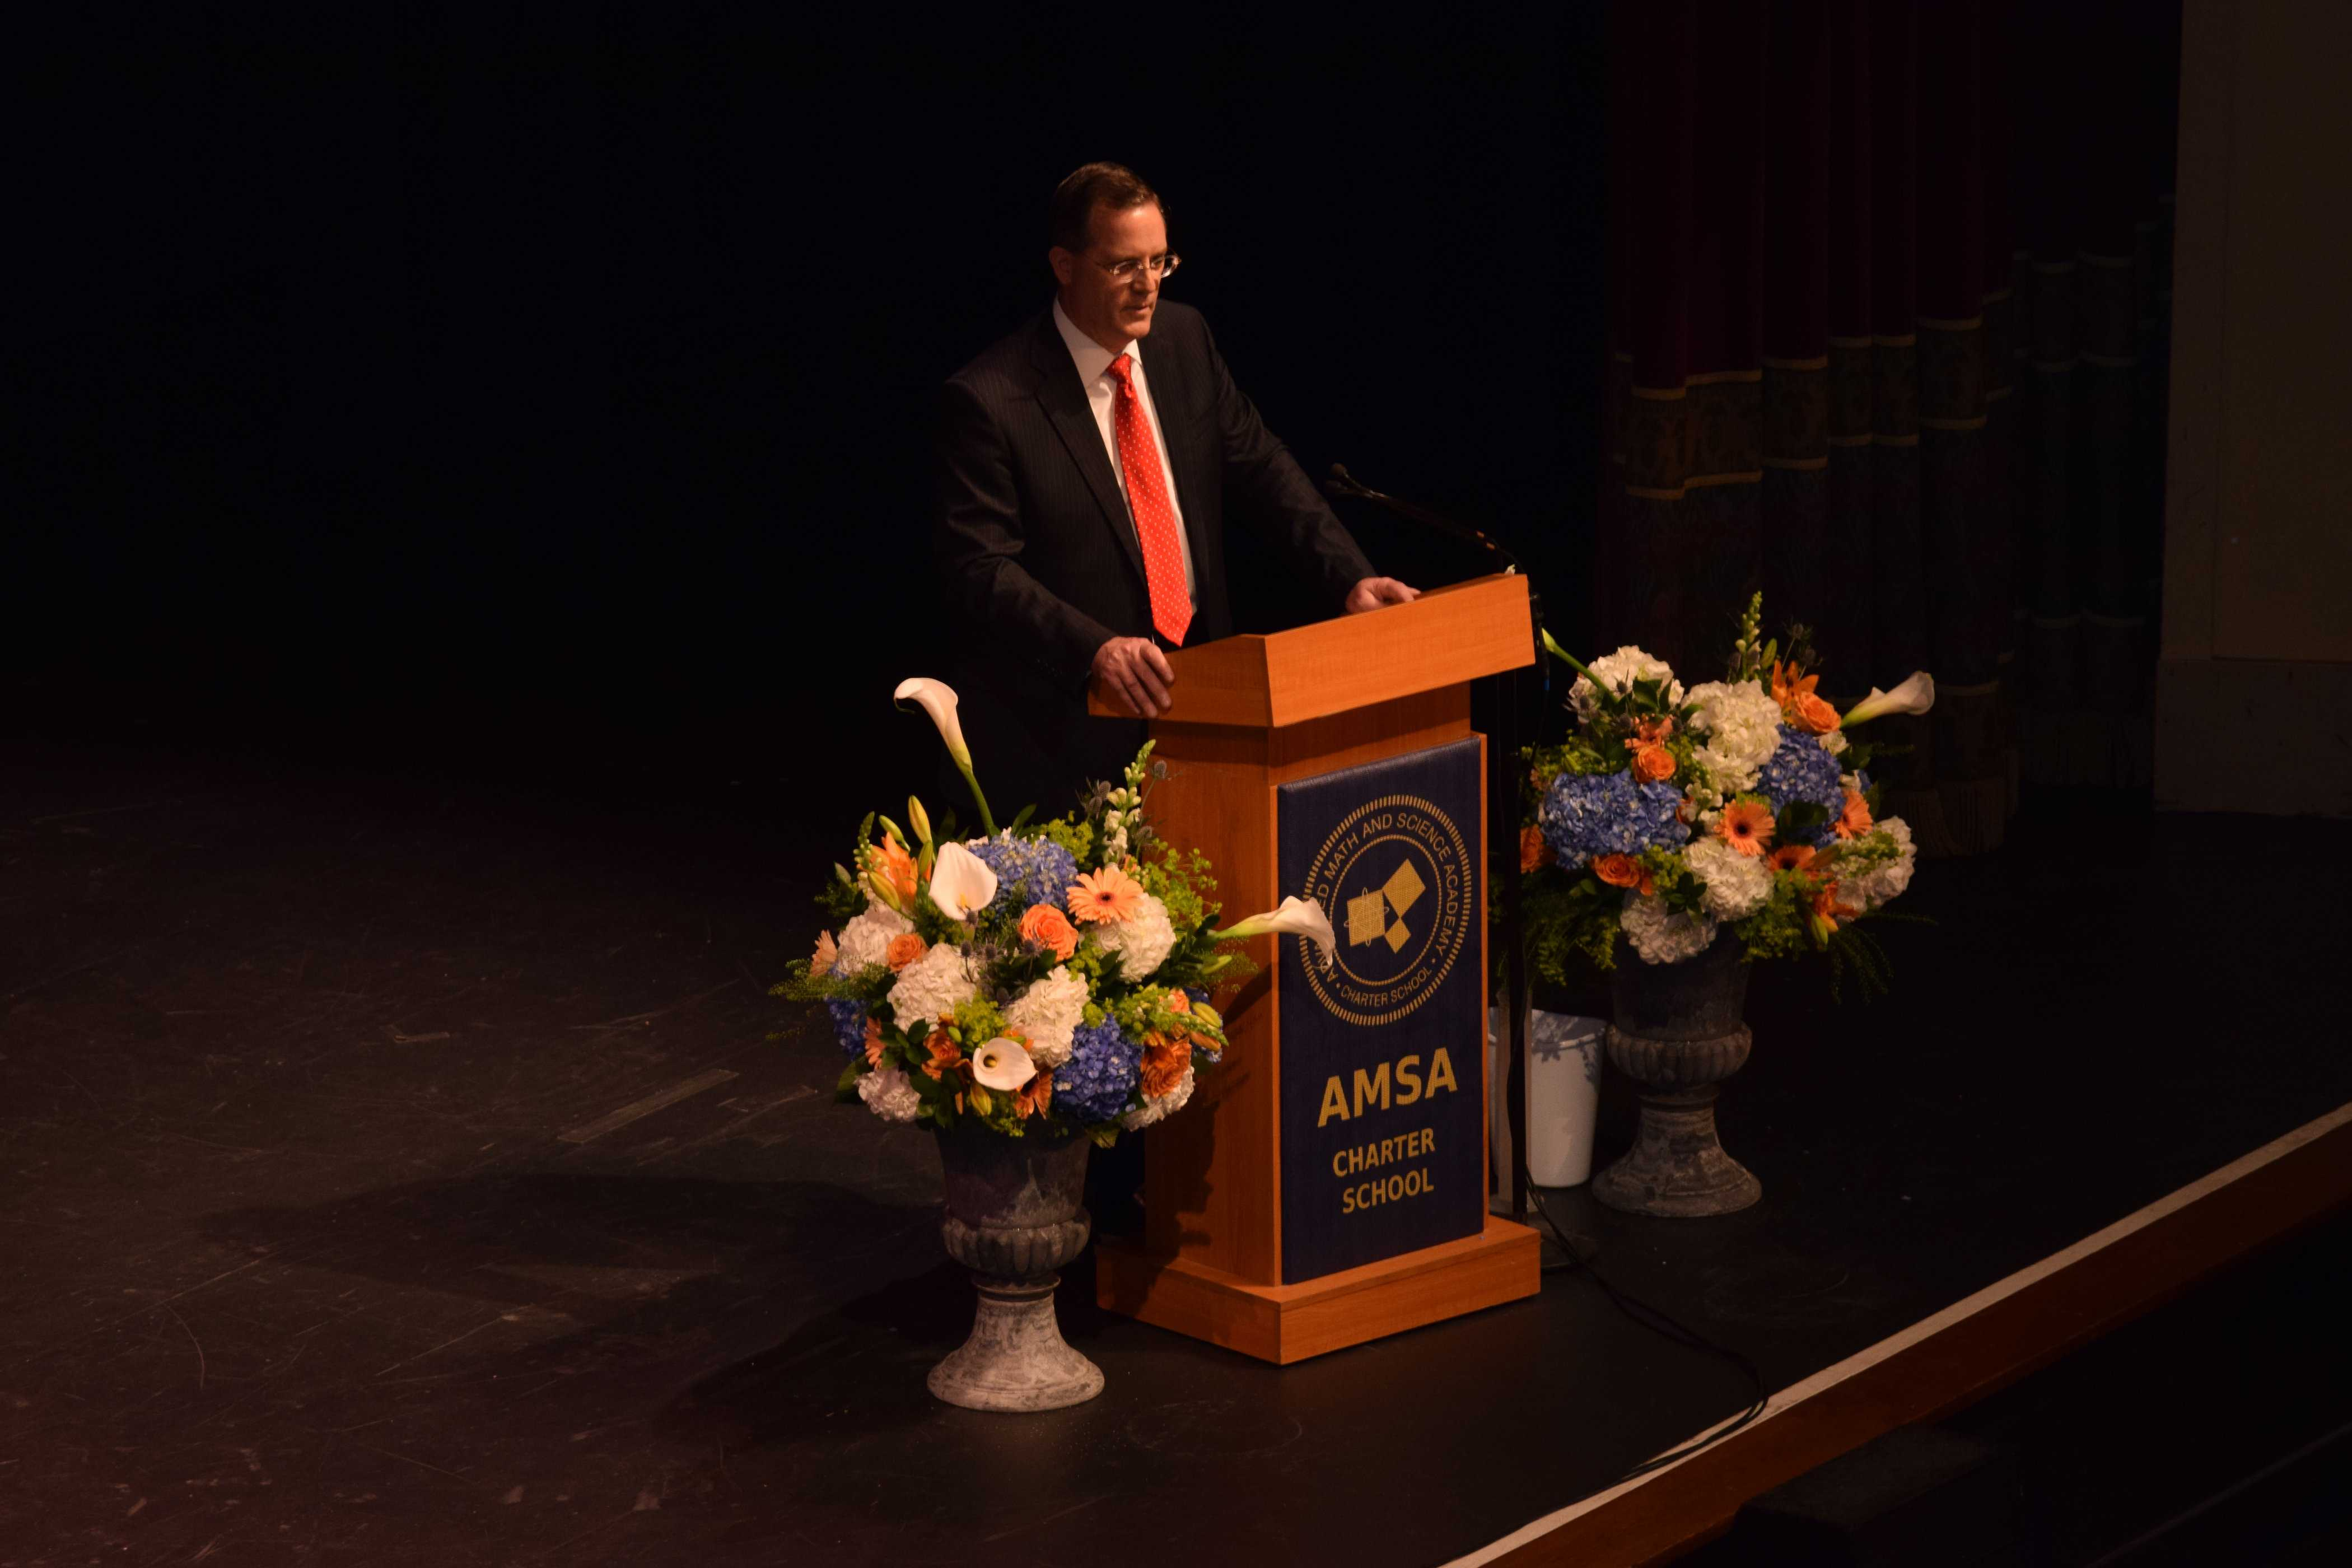 Executive Director Dr. Joseph McCleary giving remarks at Sunday's graduation ceremony in Worcester.